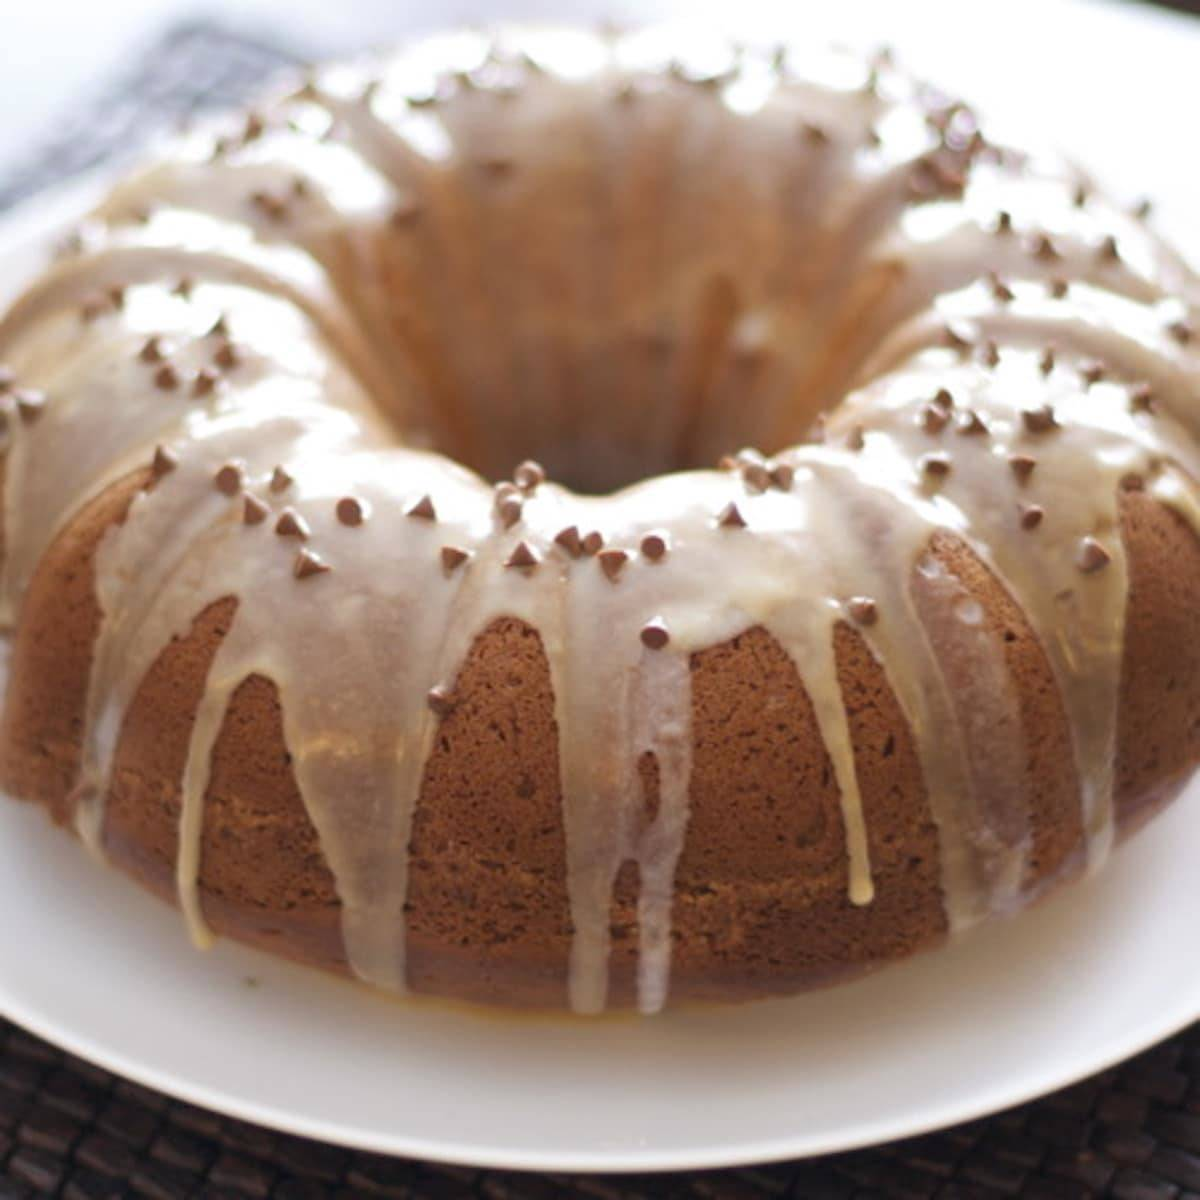 Coffee streusel bundt cake on a white plate with drizzle.